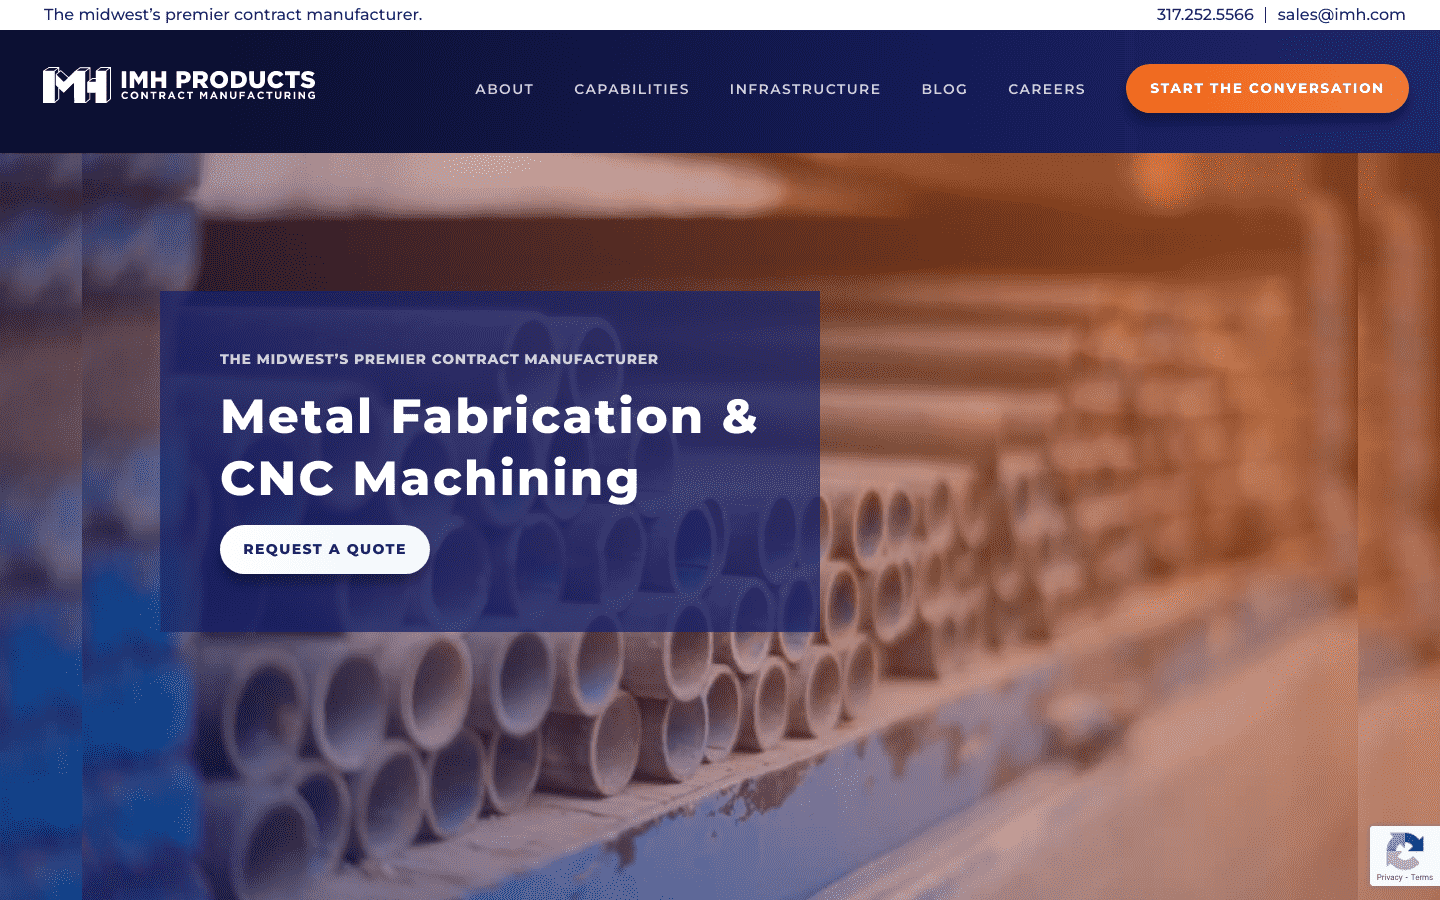 Mainstay Manufacturing reviews and complaints